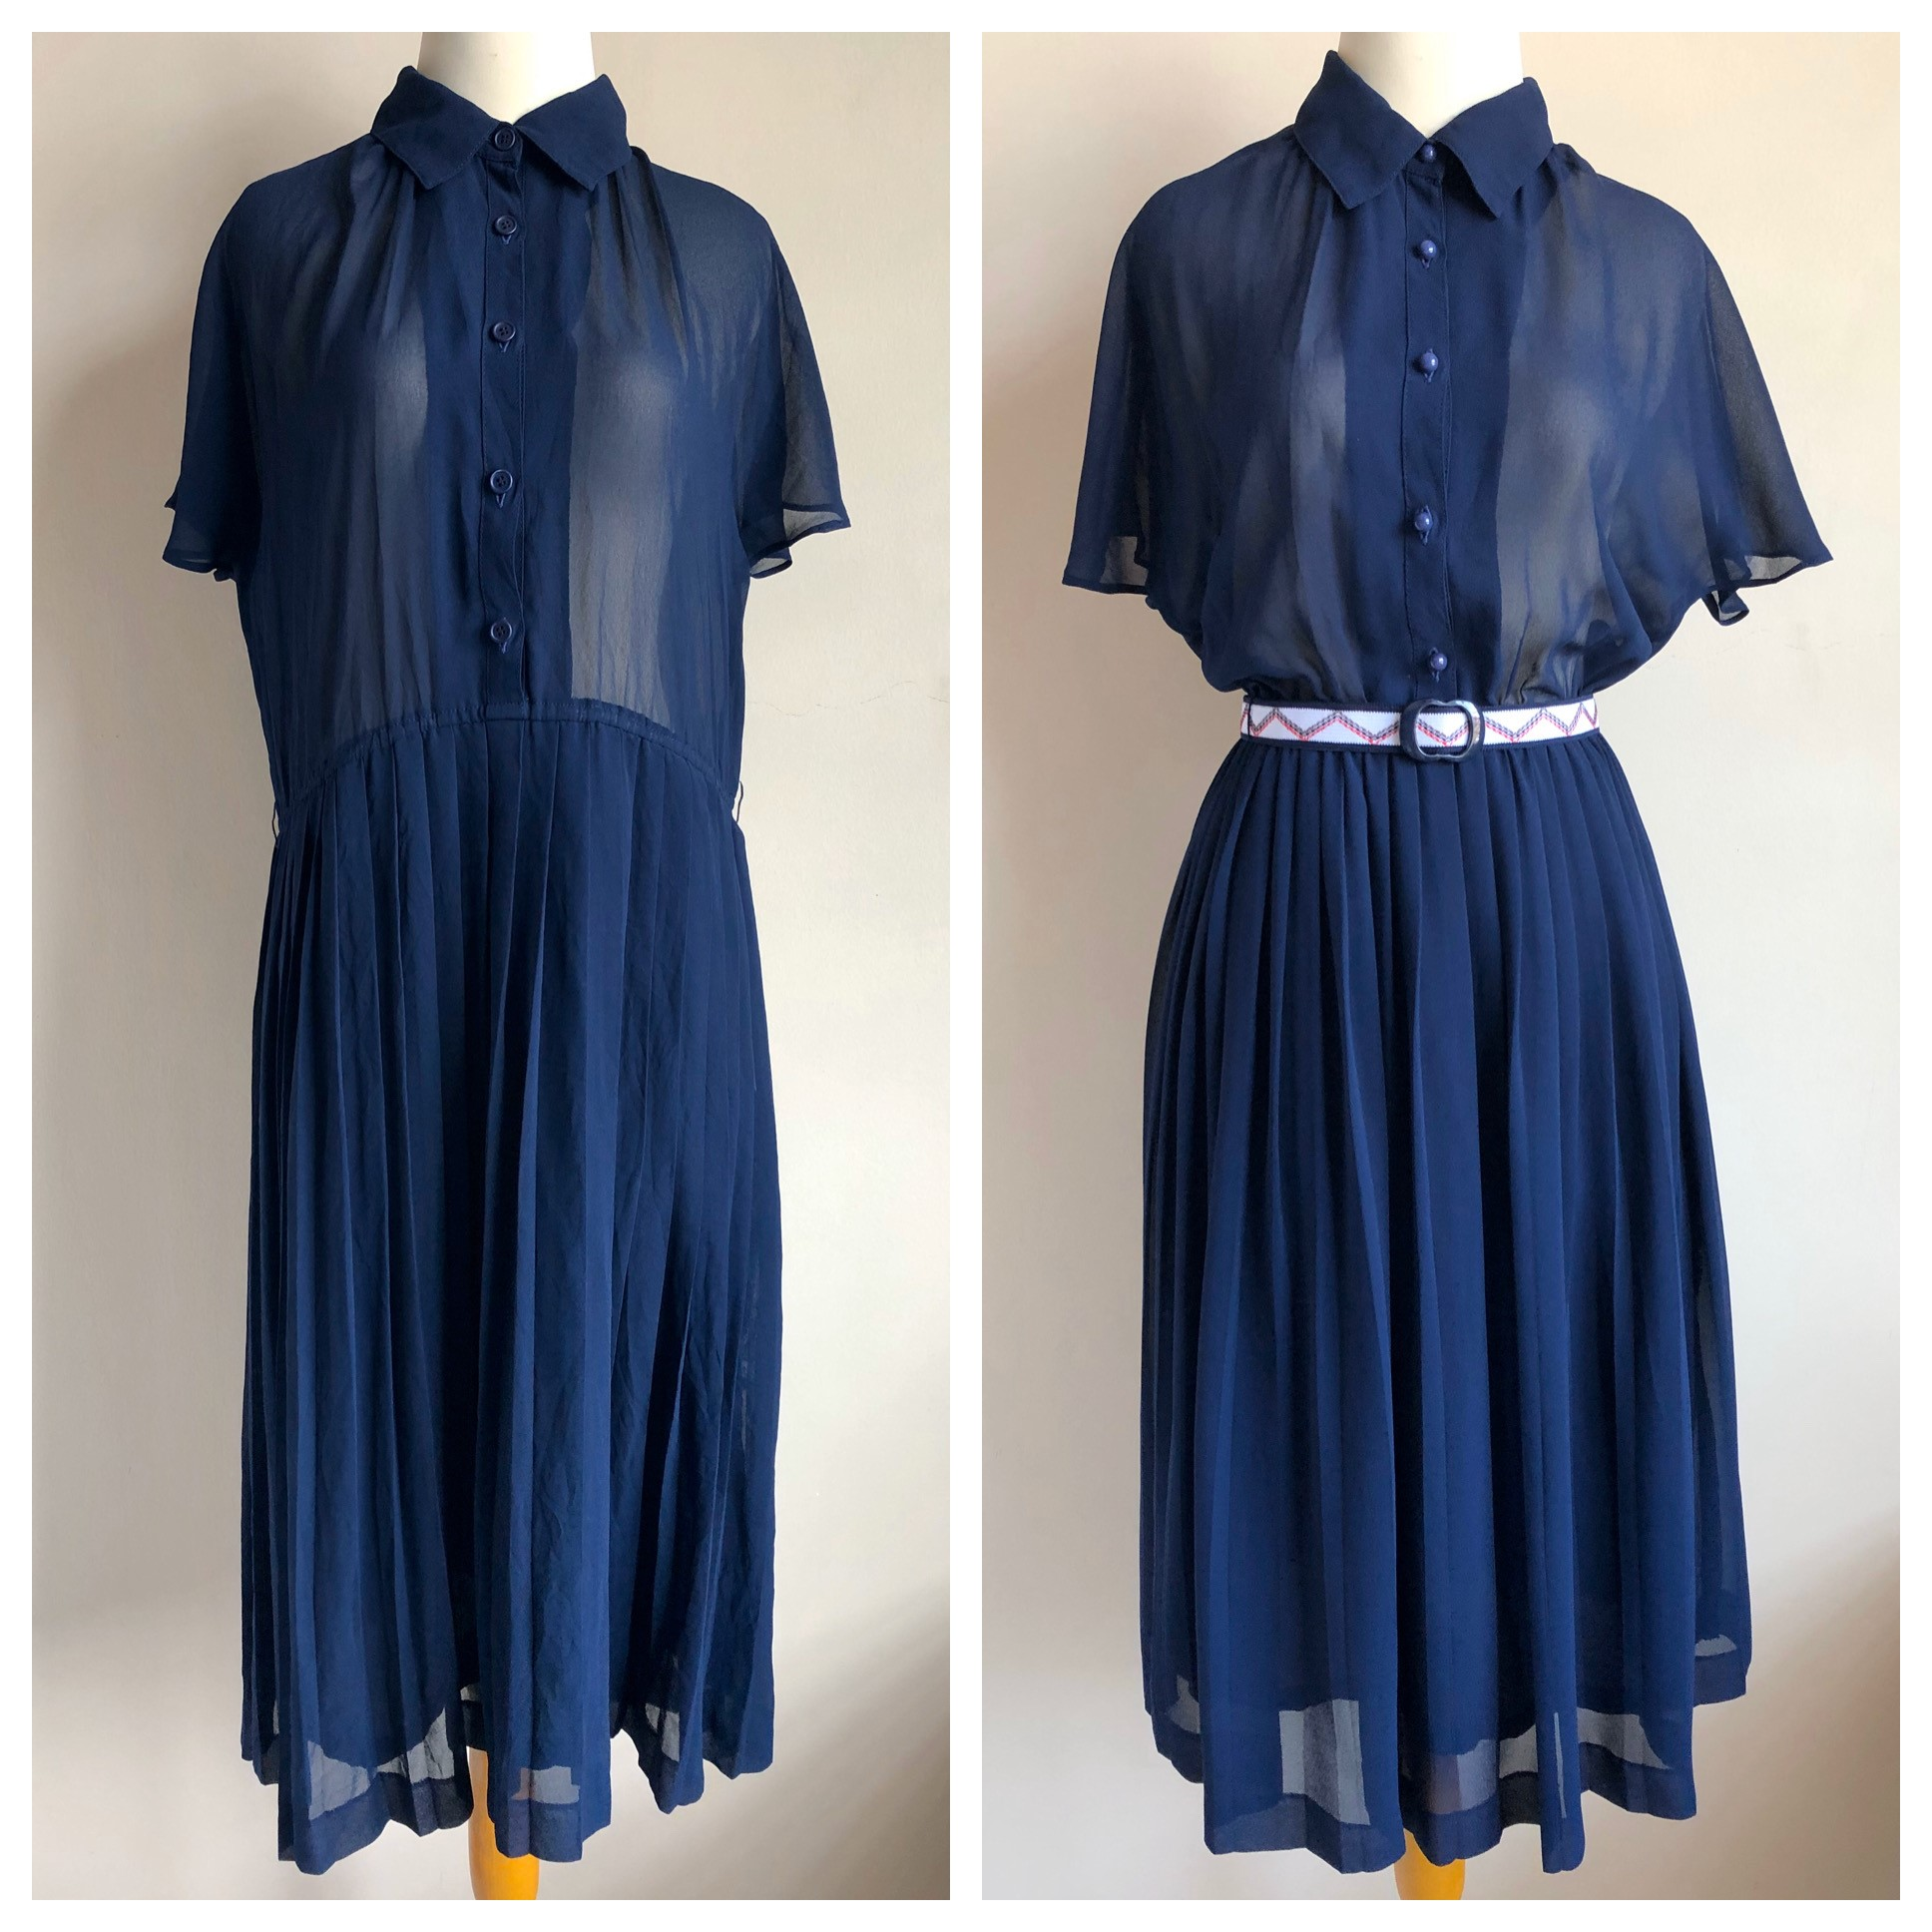 Before and After authentic vintage clothing by Heritasia Crafts